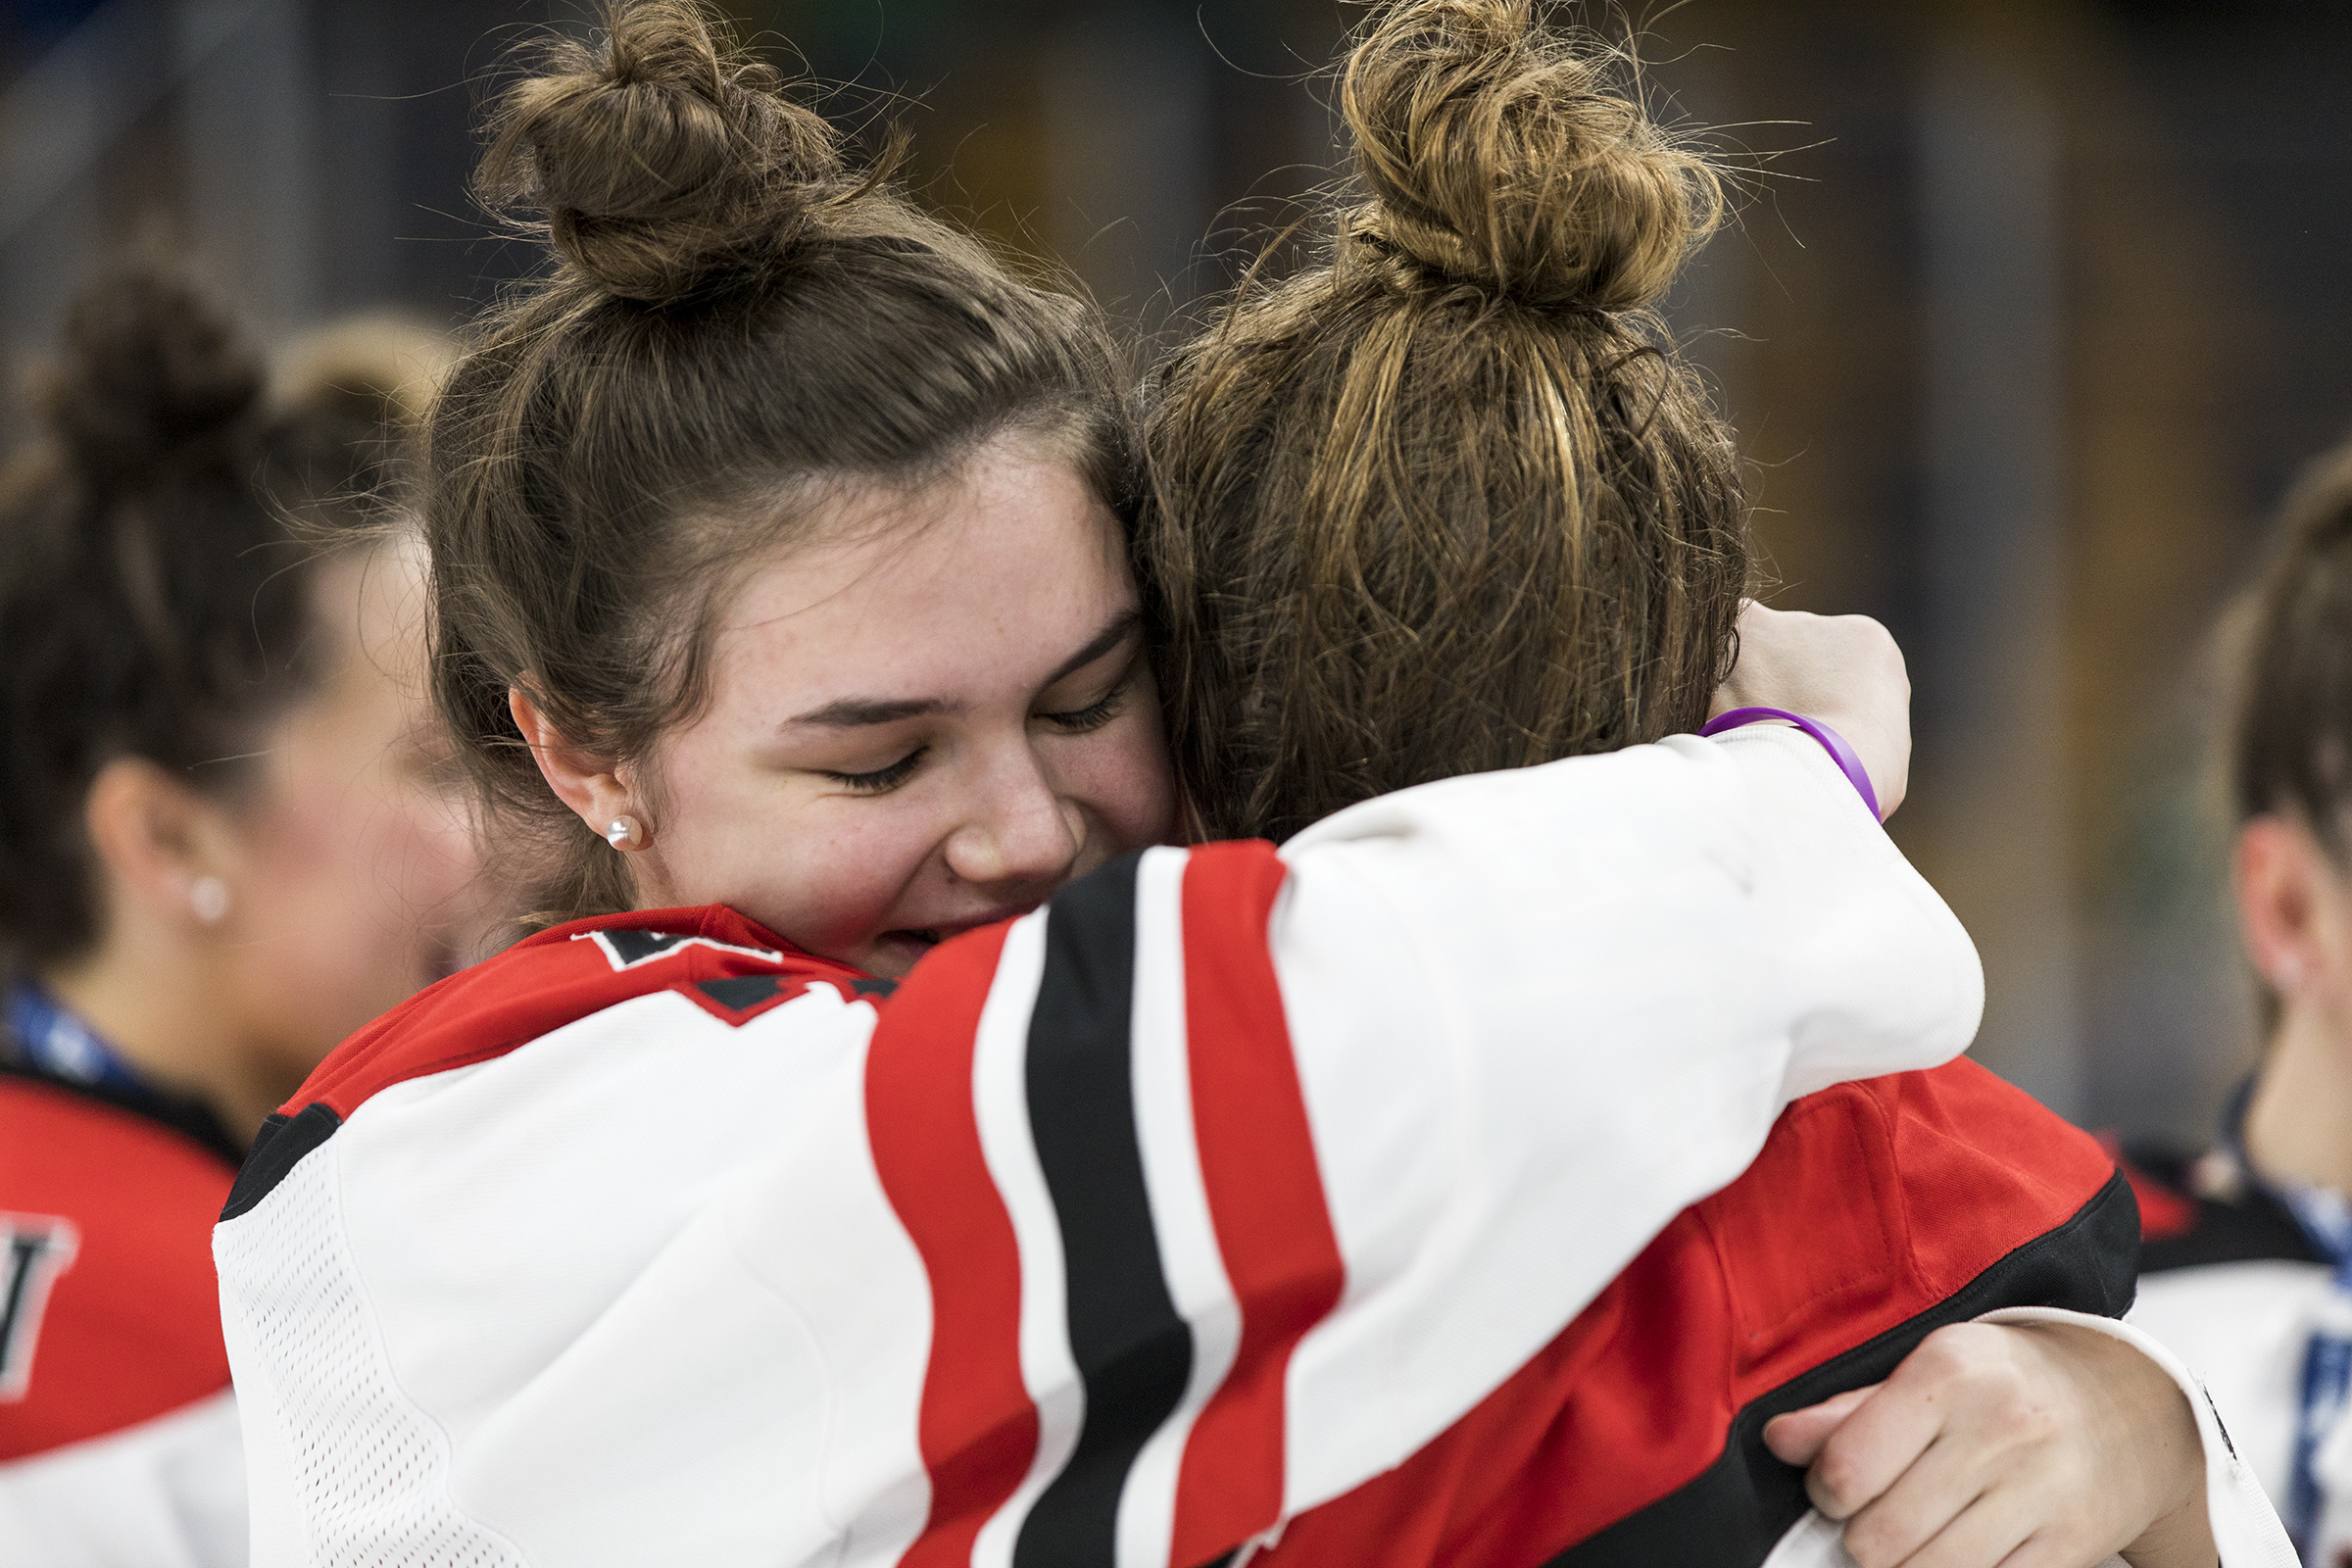 Wellesley players celebrate after winning the game against Notre Dame at TD Garden on Mar. 17, 2019. [Daily News and Wicked Local Staff Photo/Ruby Wallau]